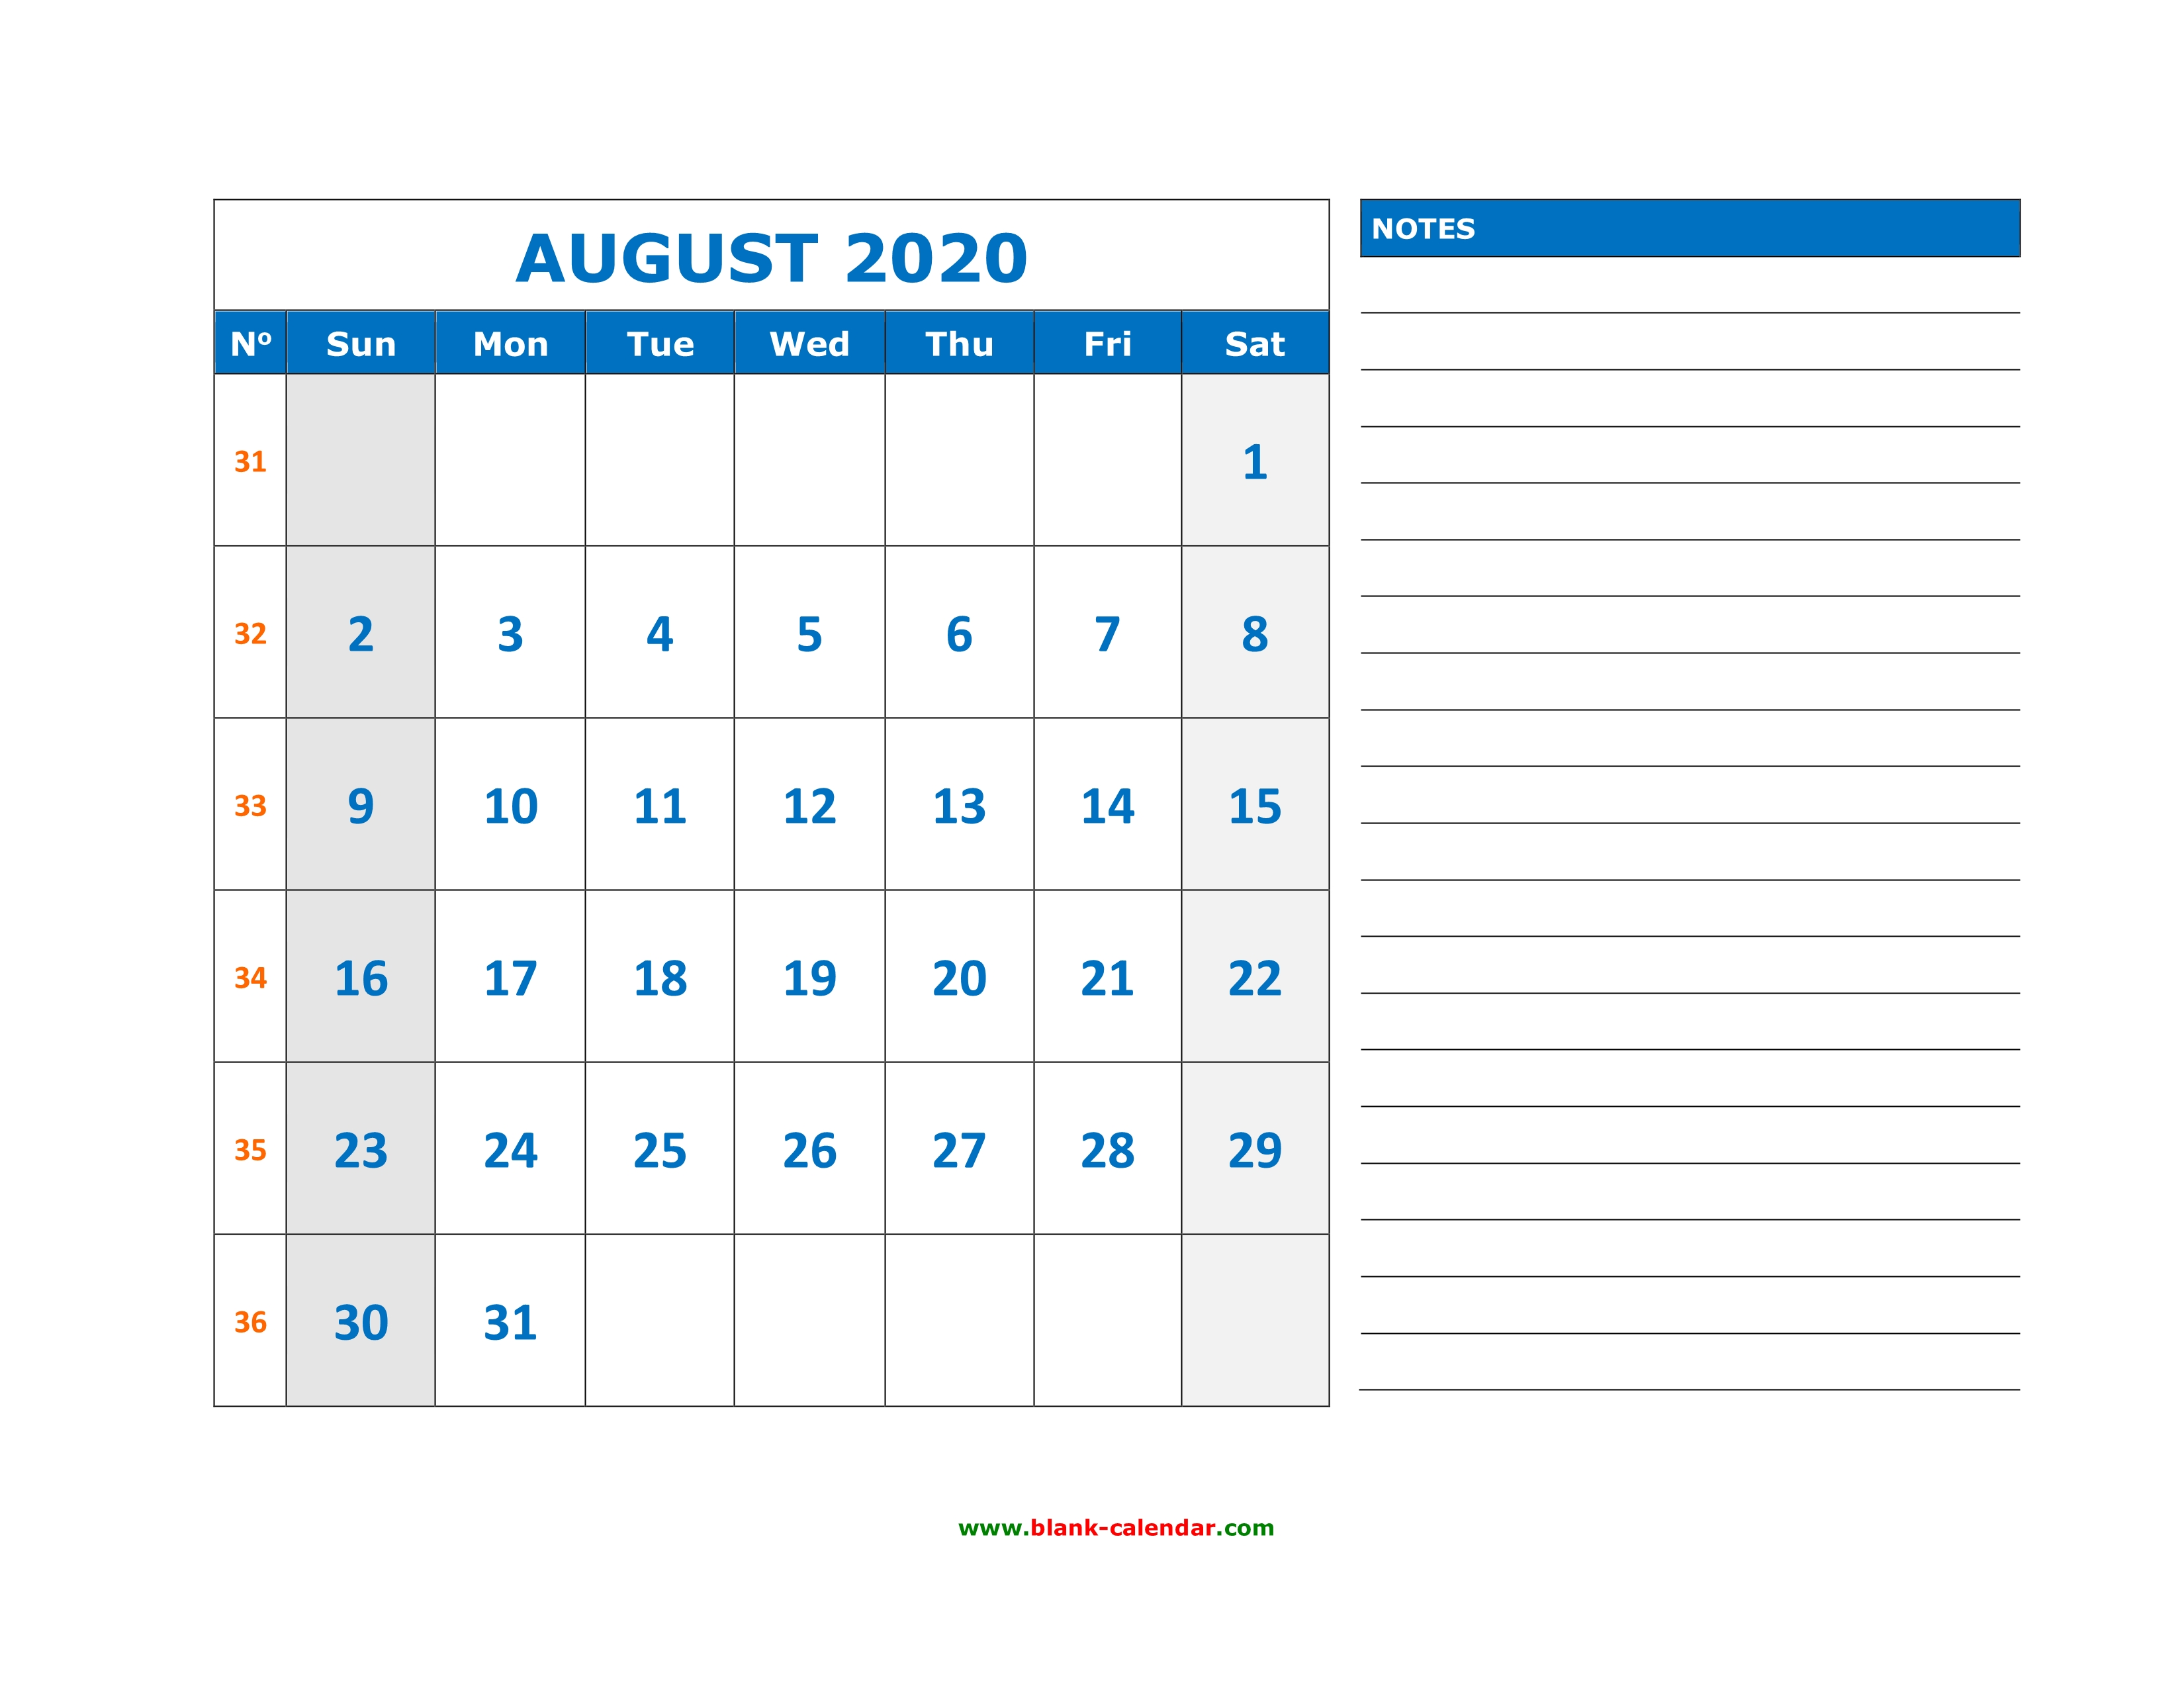 Calendar August 2020 Printable.Free Download Printable August 2020 Calendar Large Space For